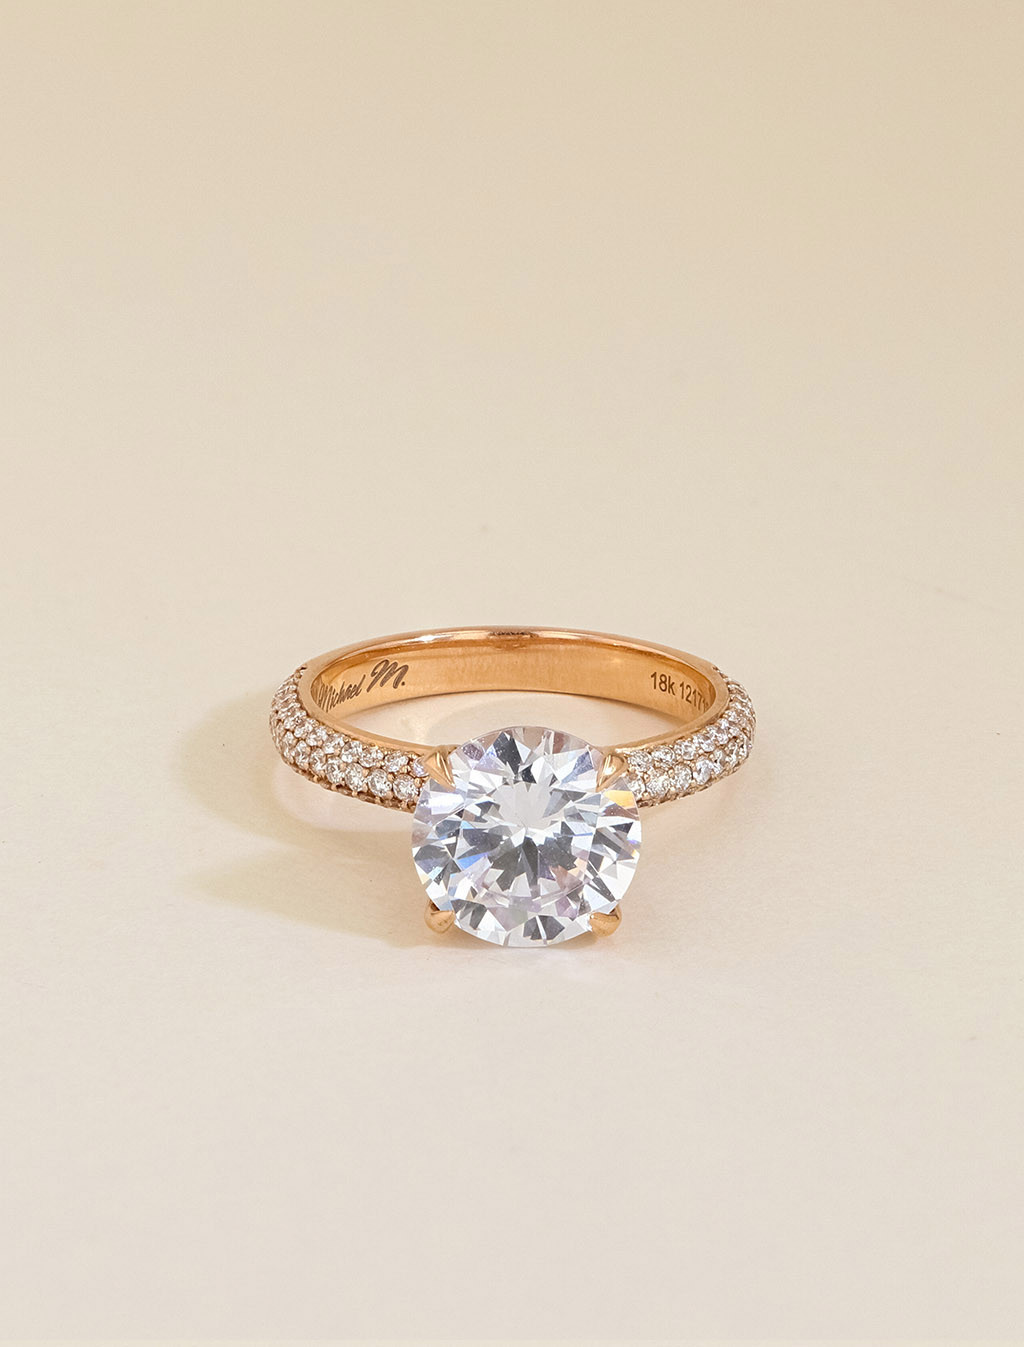 Michael M Round Domed Pavé Diamond Engagement Ring Setting front view